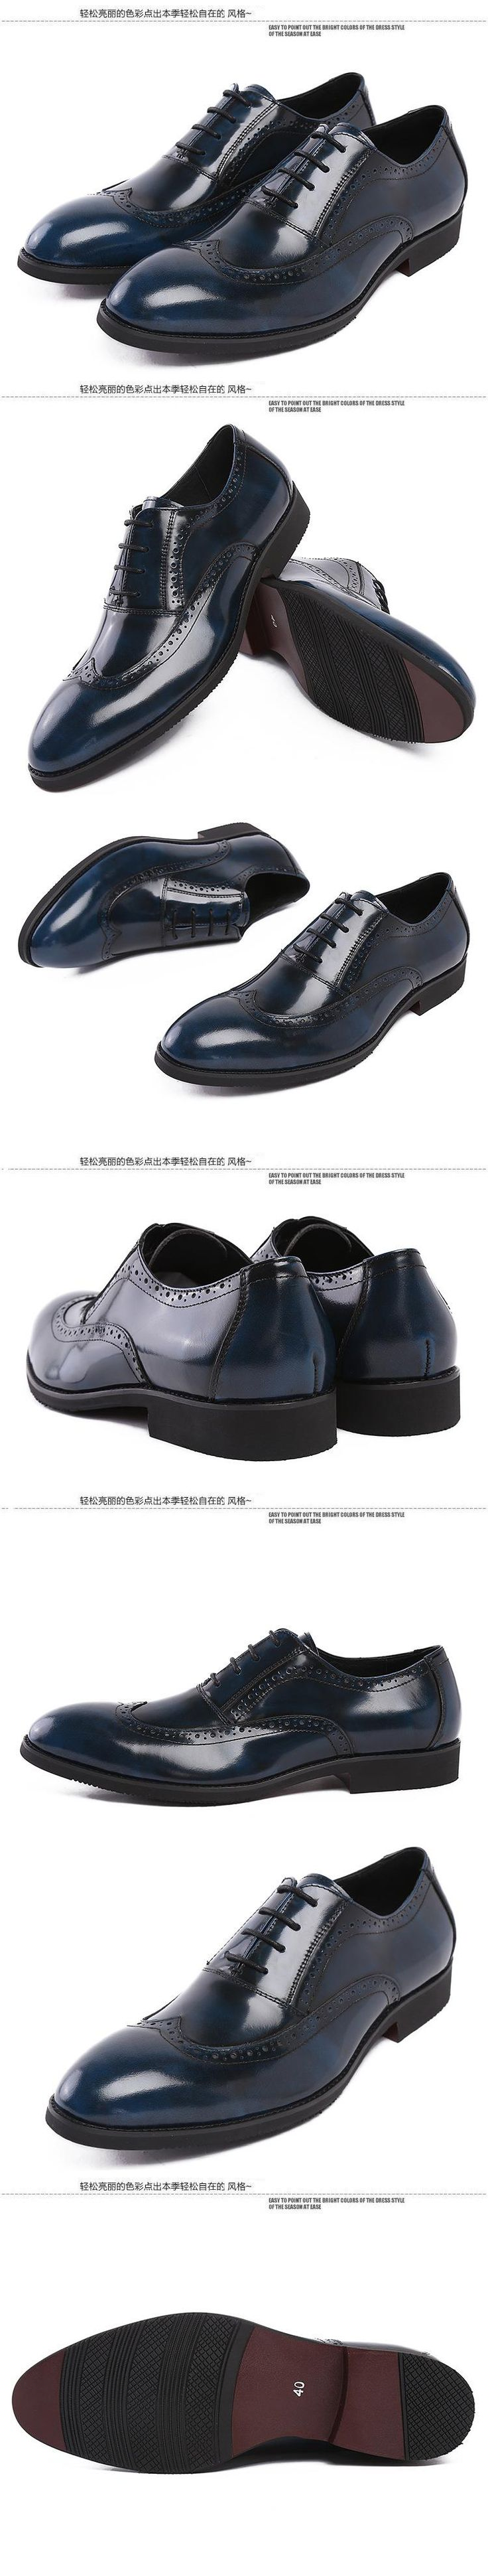 2015 new spring and autumn full grain patent genuine leather Men's Business Casual Pointed toe Bullock Carved fashion oxfords